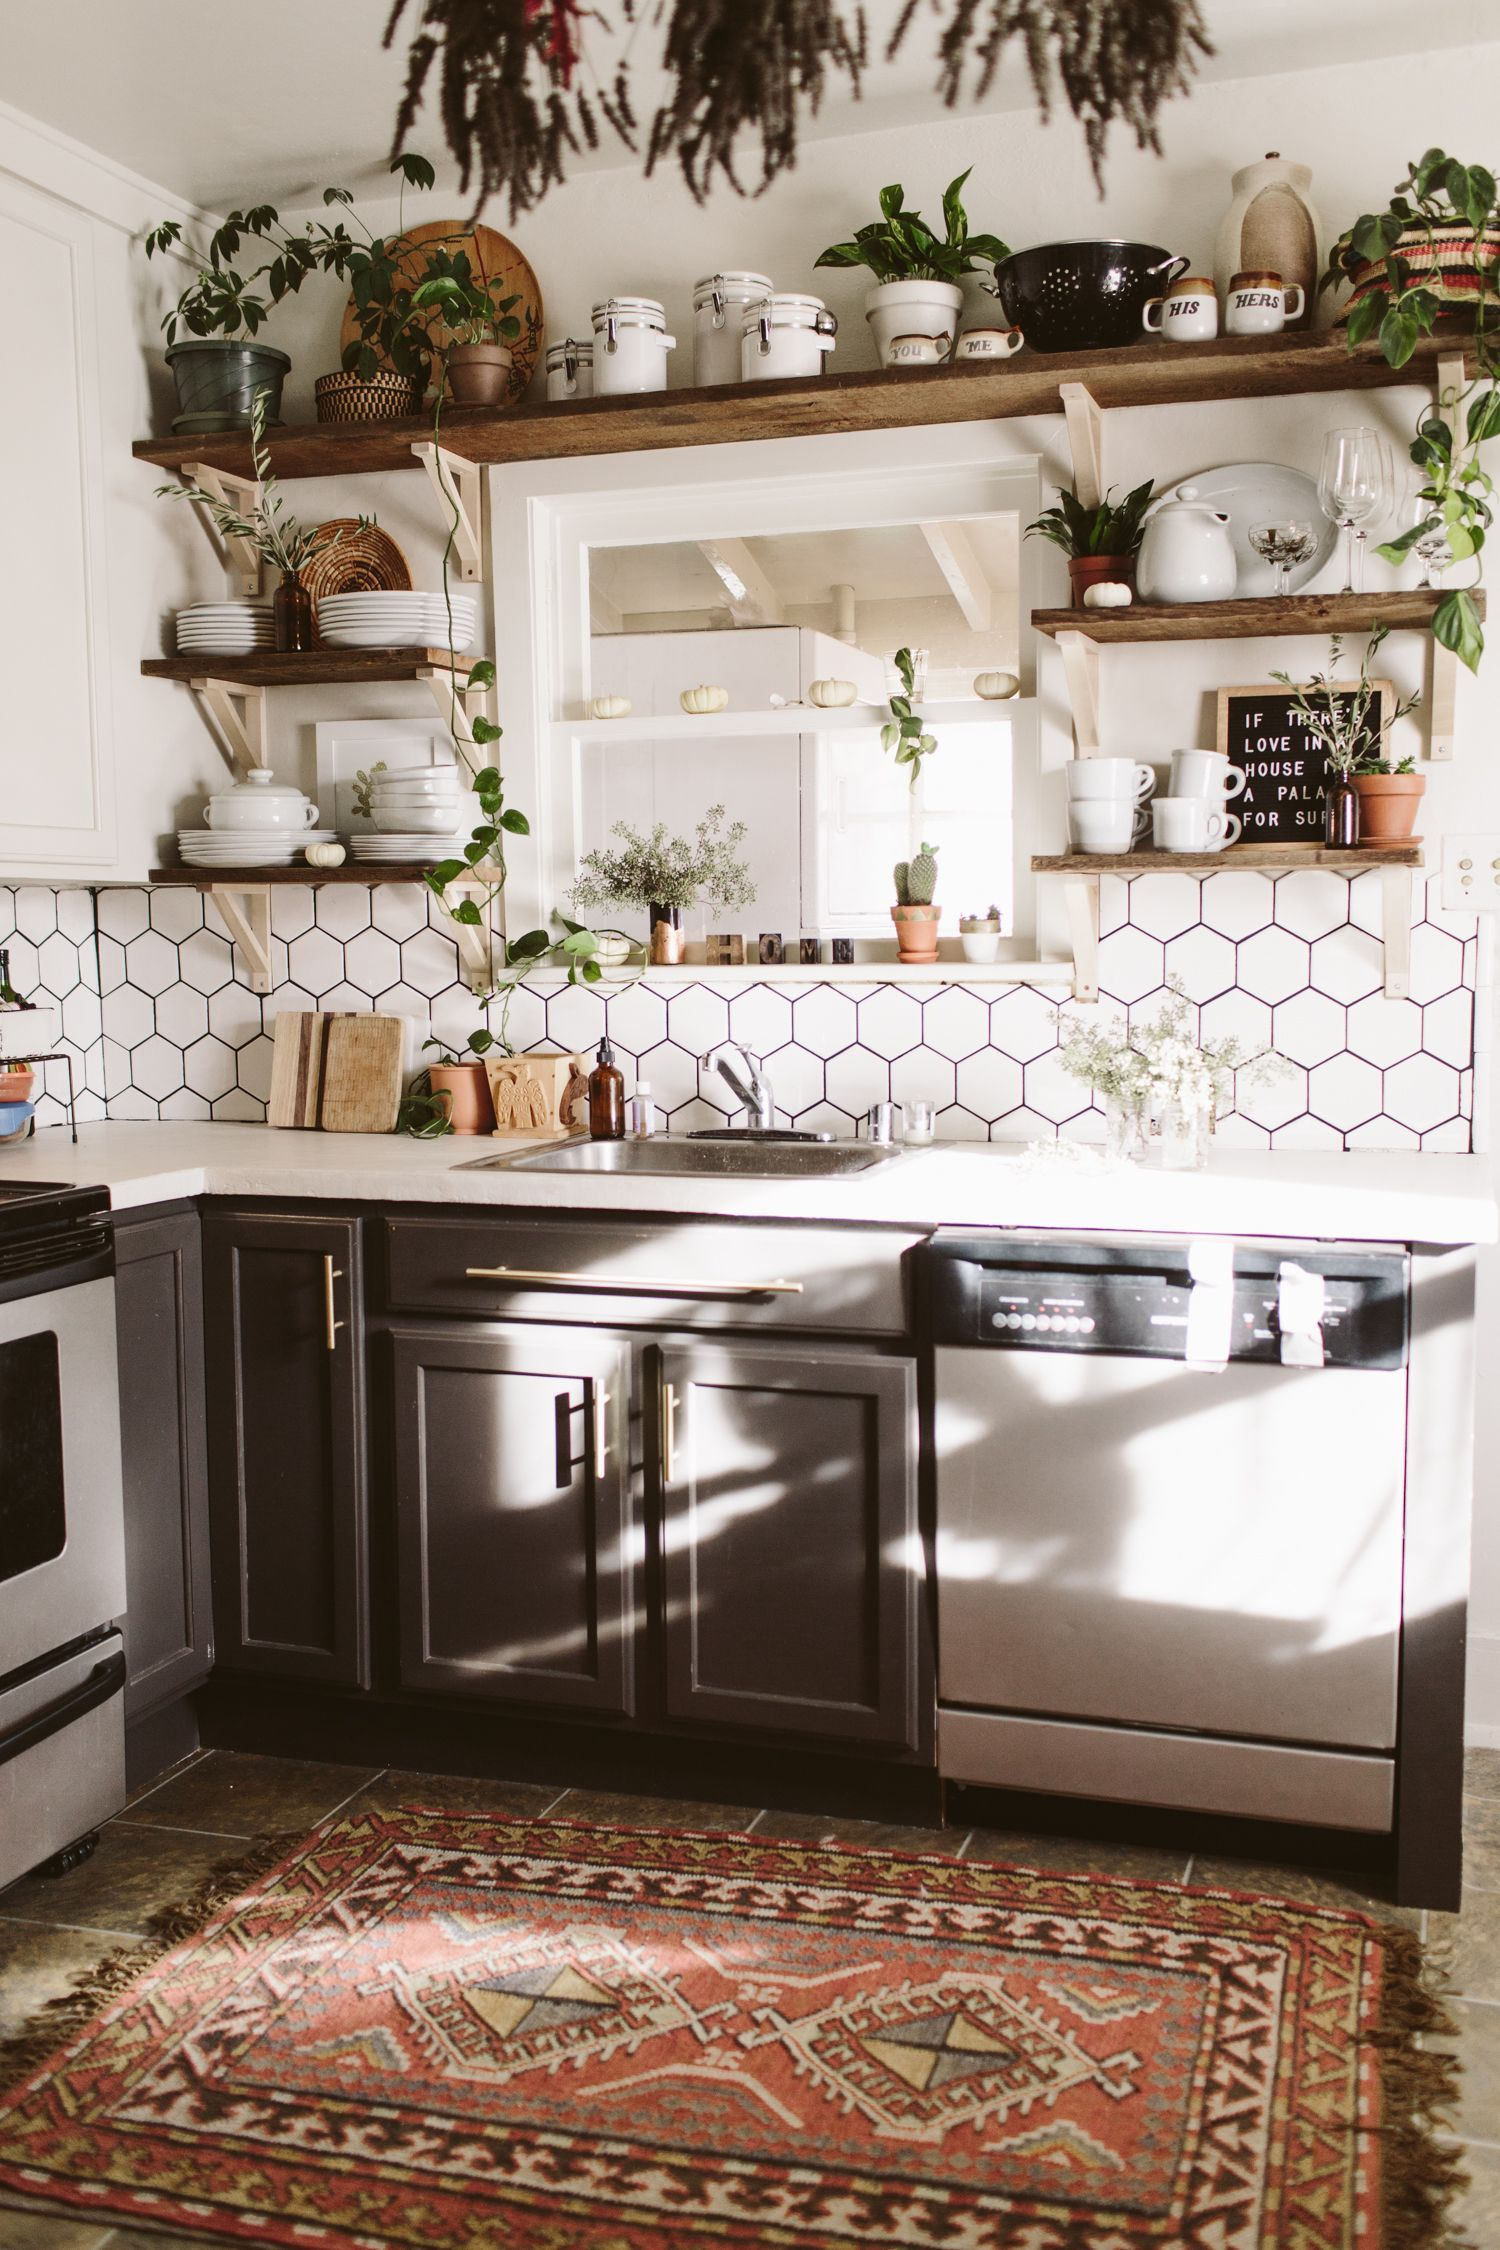 Fresh Boho Kitchen Remodel Before + After -  Fresh Boho Kitchen Remodel Before + After  - #after #before #Boho #bohodecor #decorideas #eclecticdecor #fresh #kitchen #remodel #vintagedecor